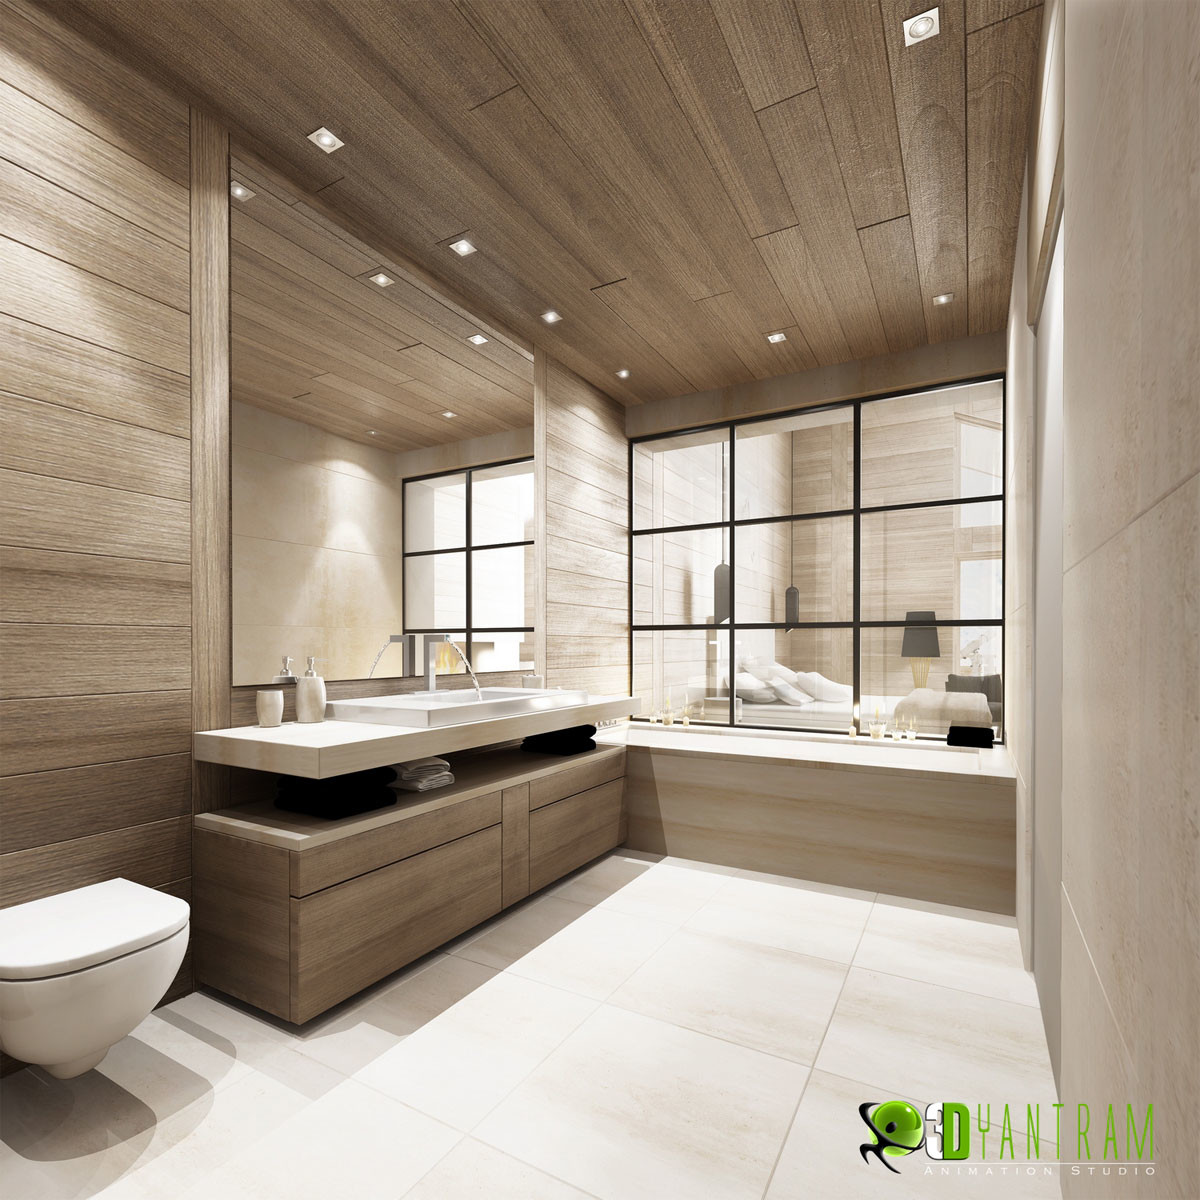 Design a bathroom 3d - Bathroom Design Yantram Studio Residential 3d Interior Cgi Bathrrom San Fancisco